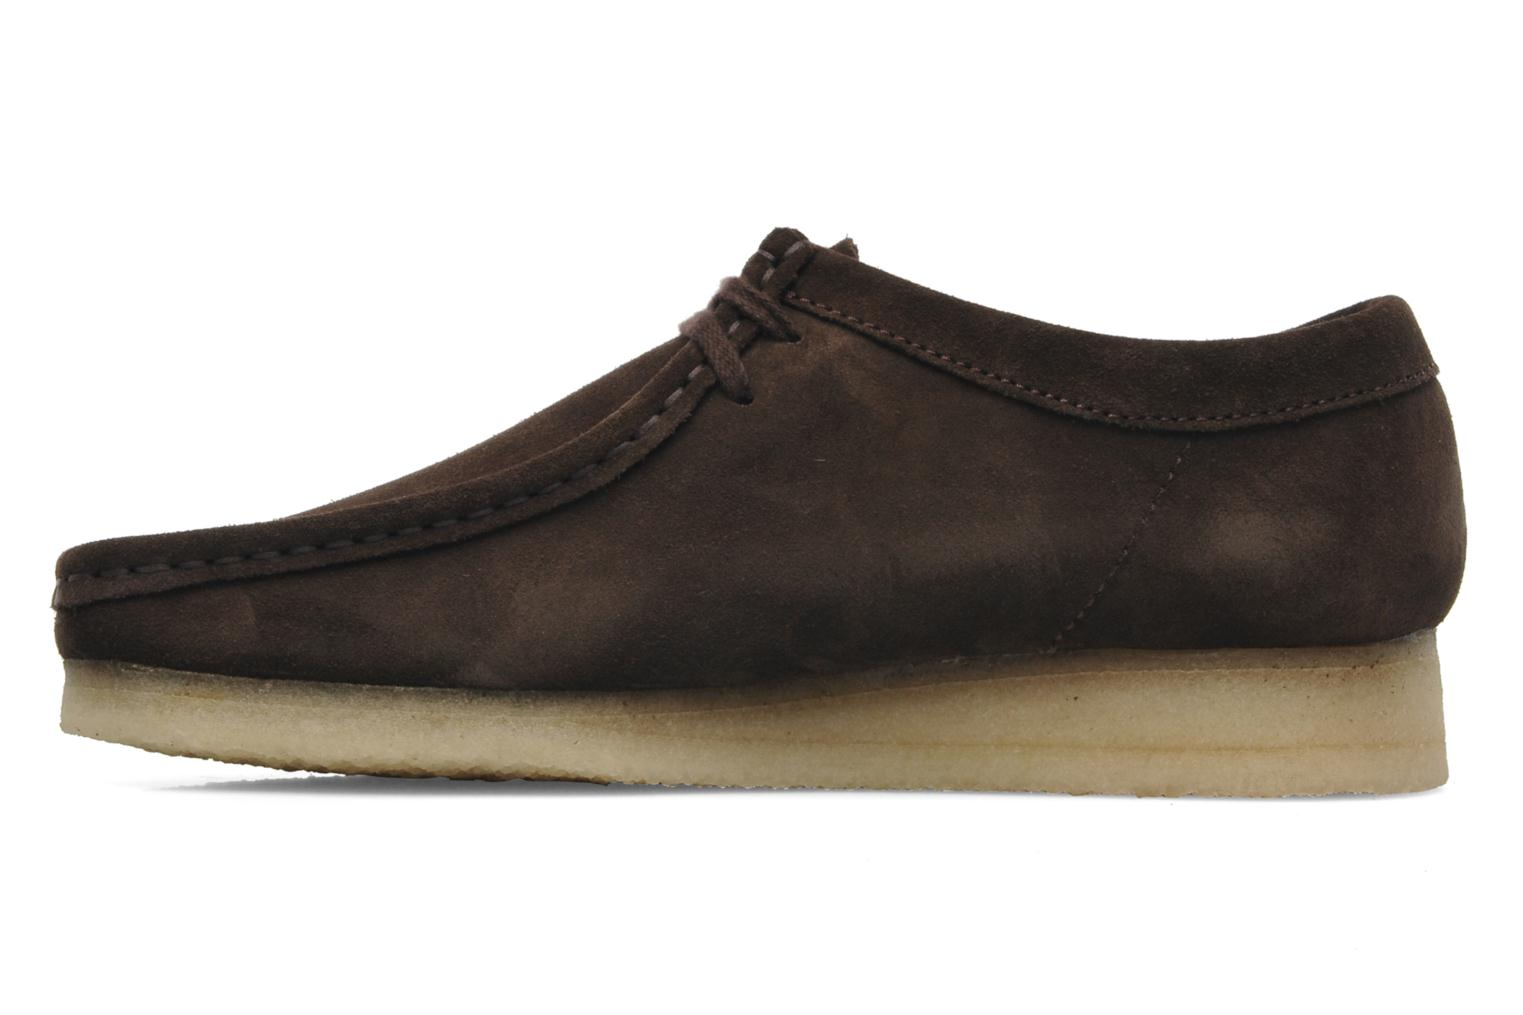 Chaussures à lacets Clarks Originals Wallabee M Marron vue face